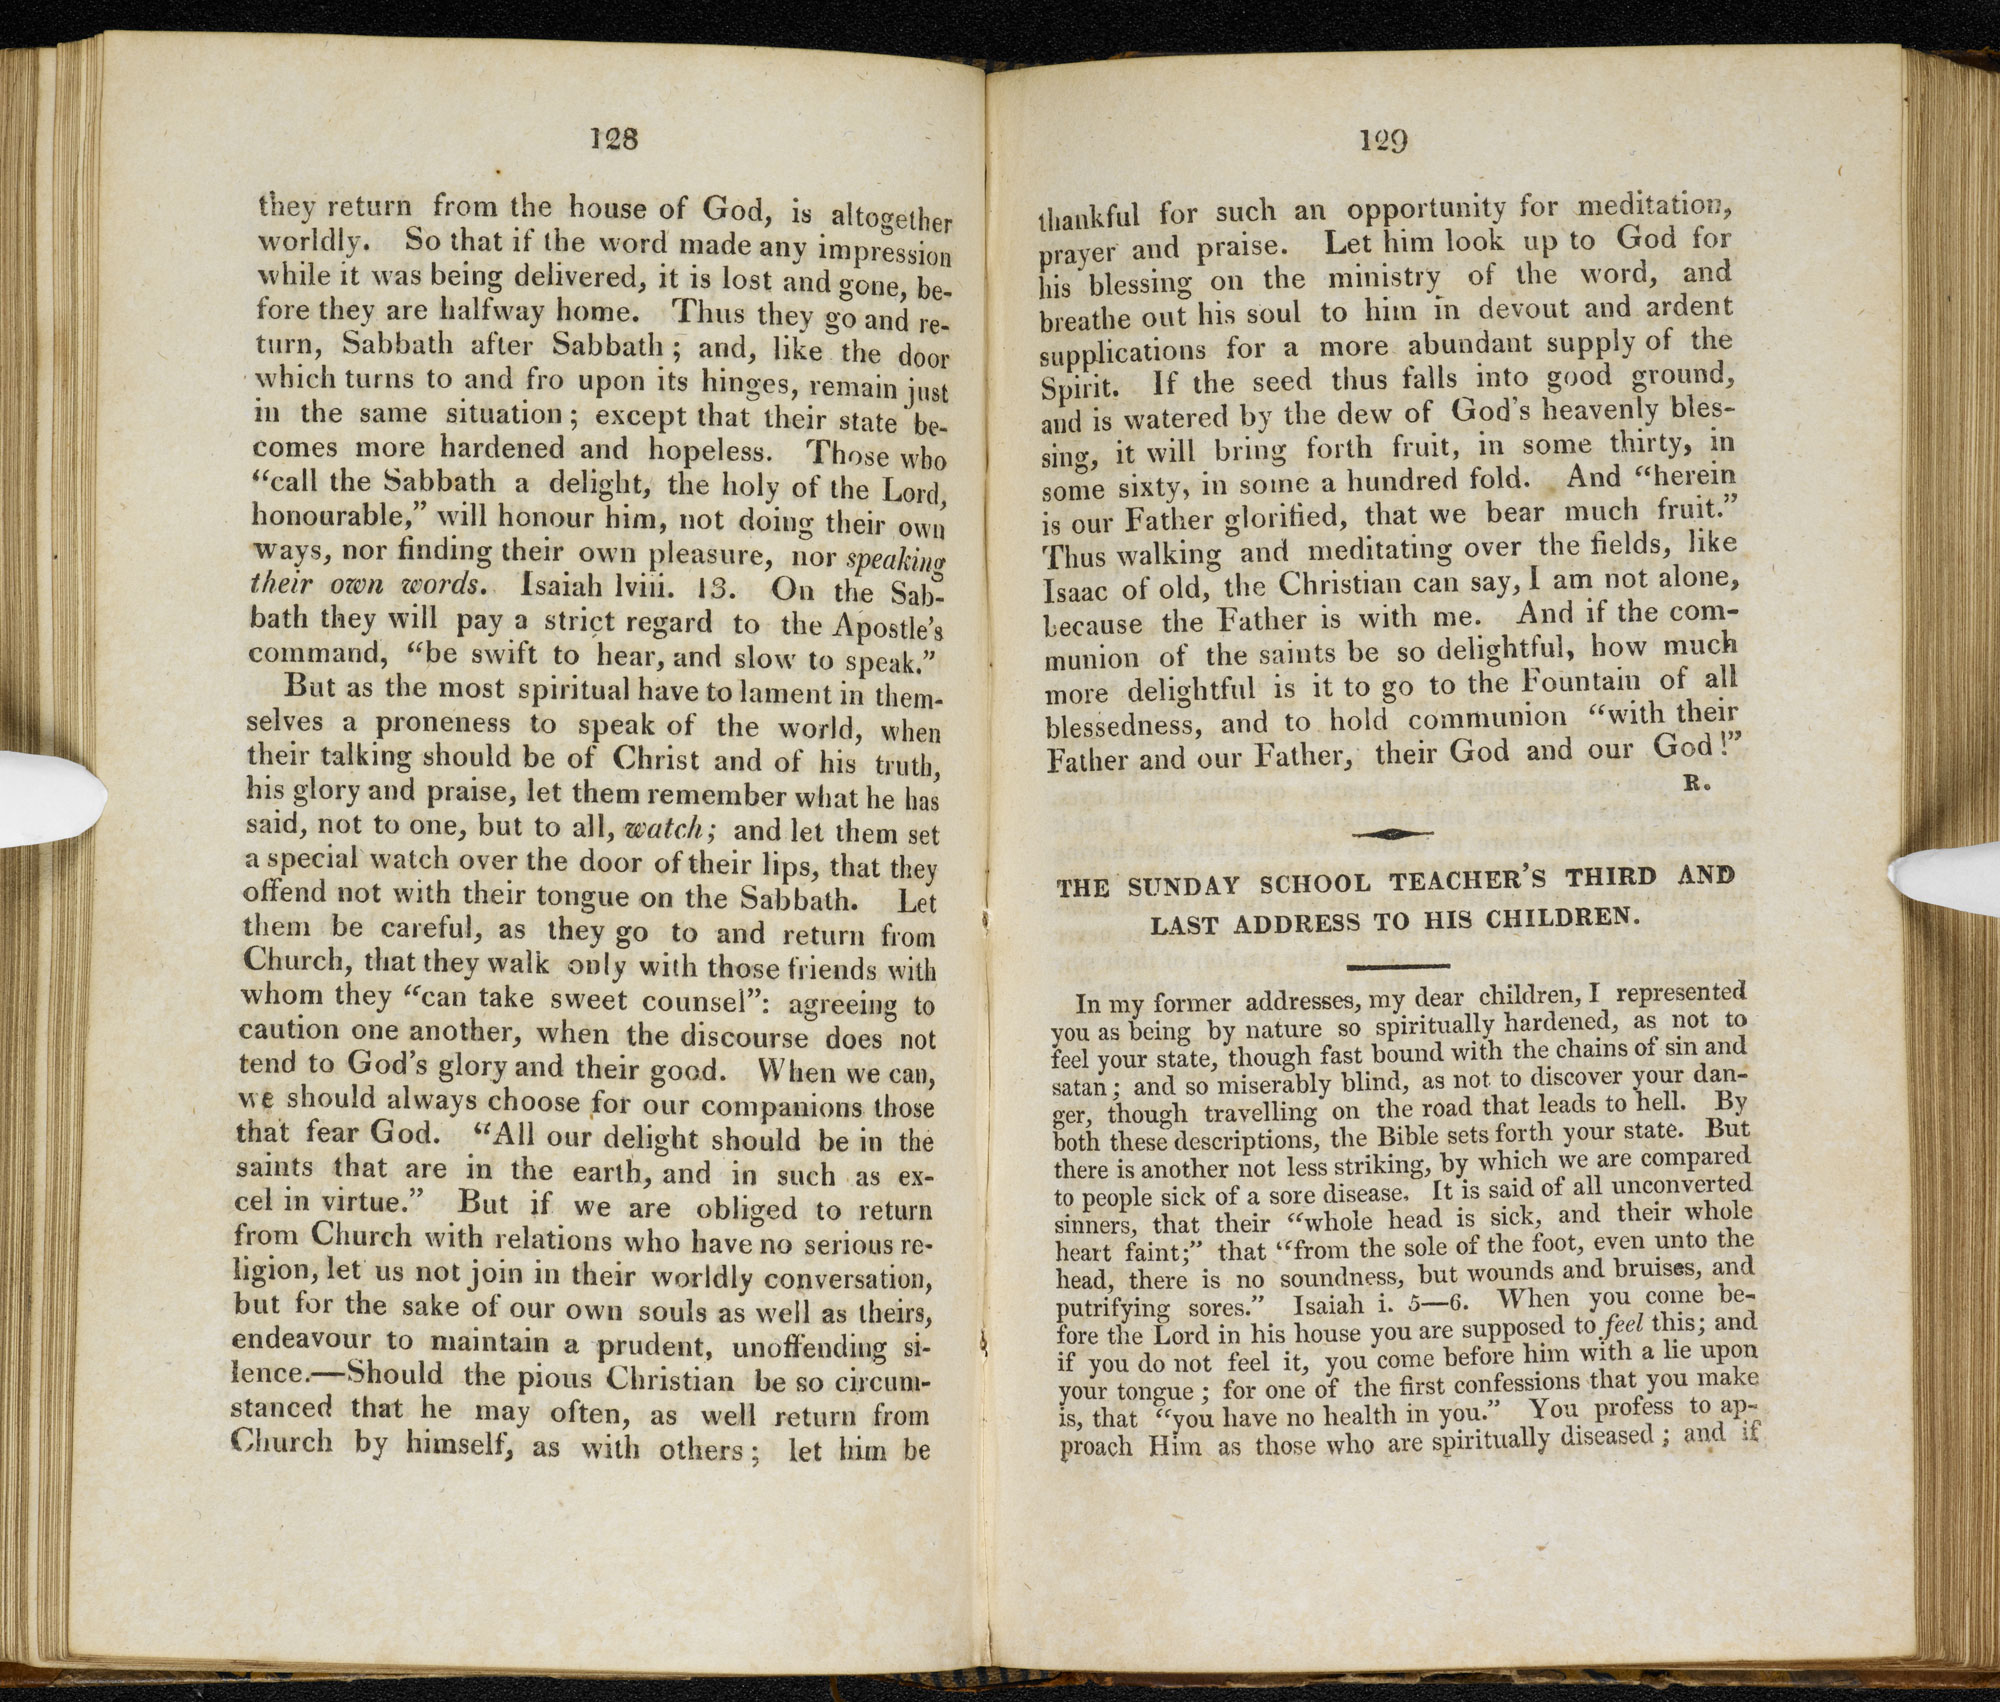 Child's First Tales, written by the Brontë sisters' headmaster [page: vol. II pp. 128-29]